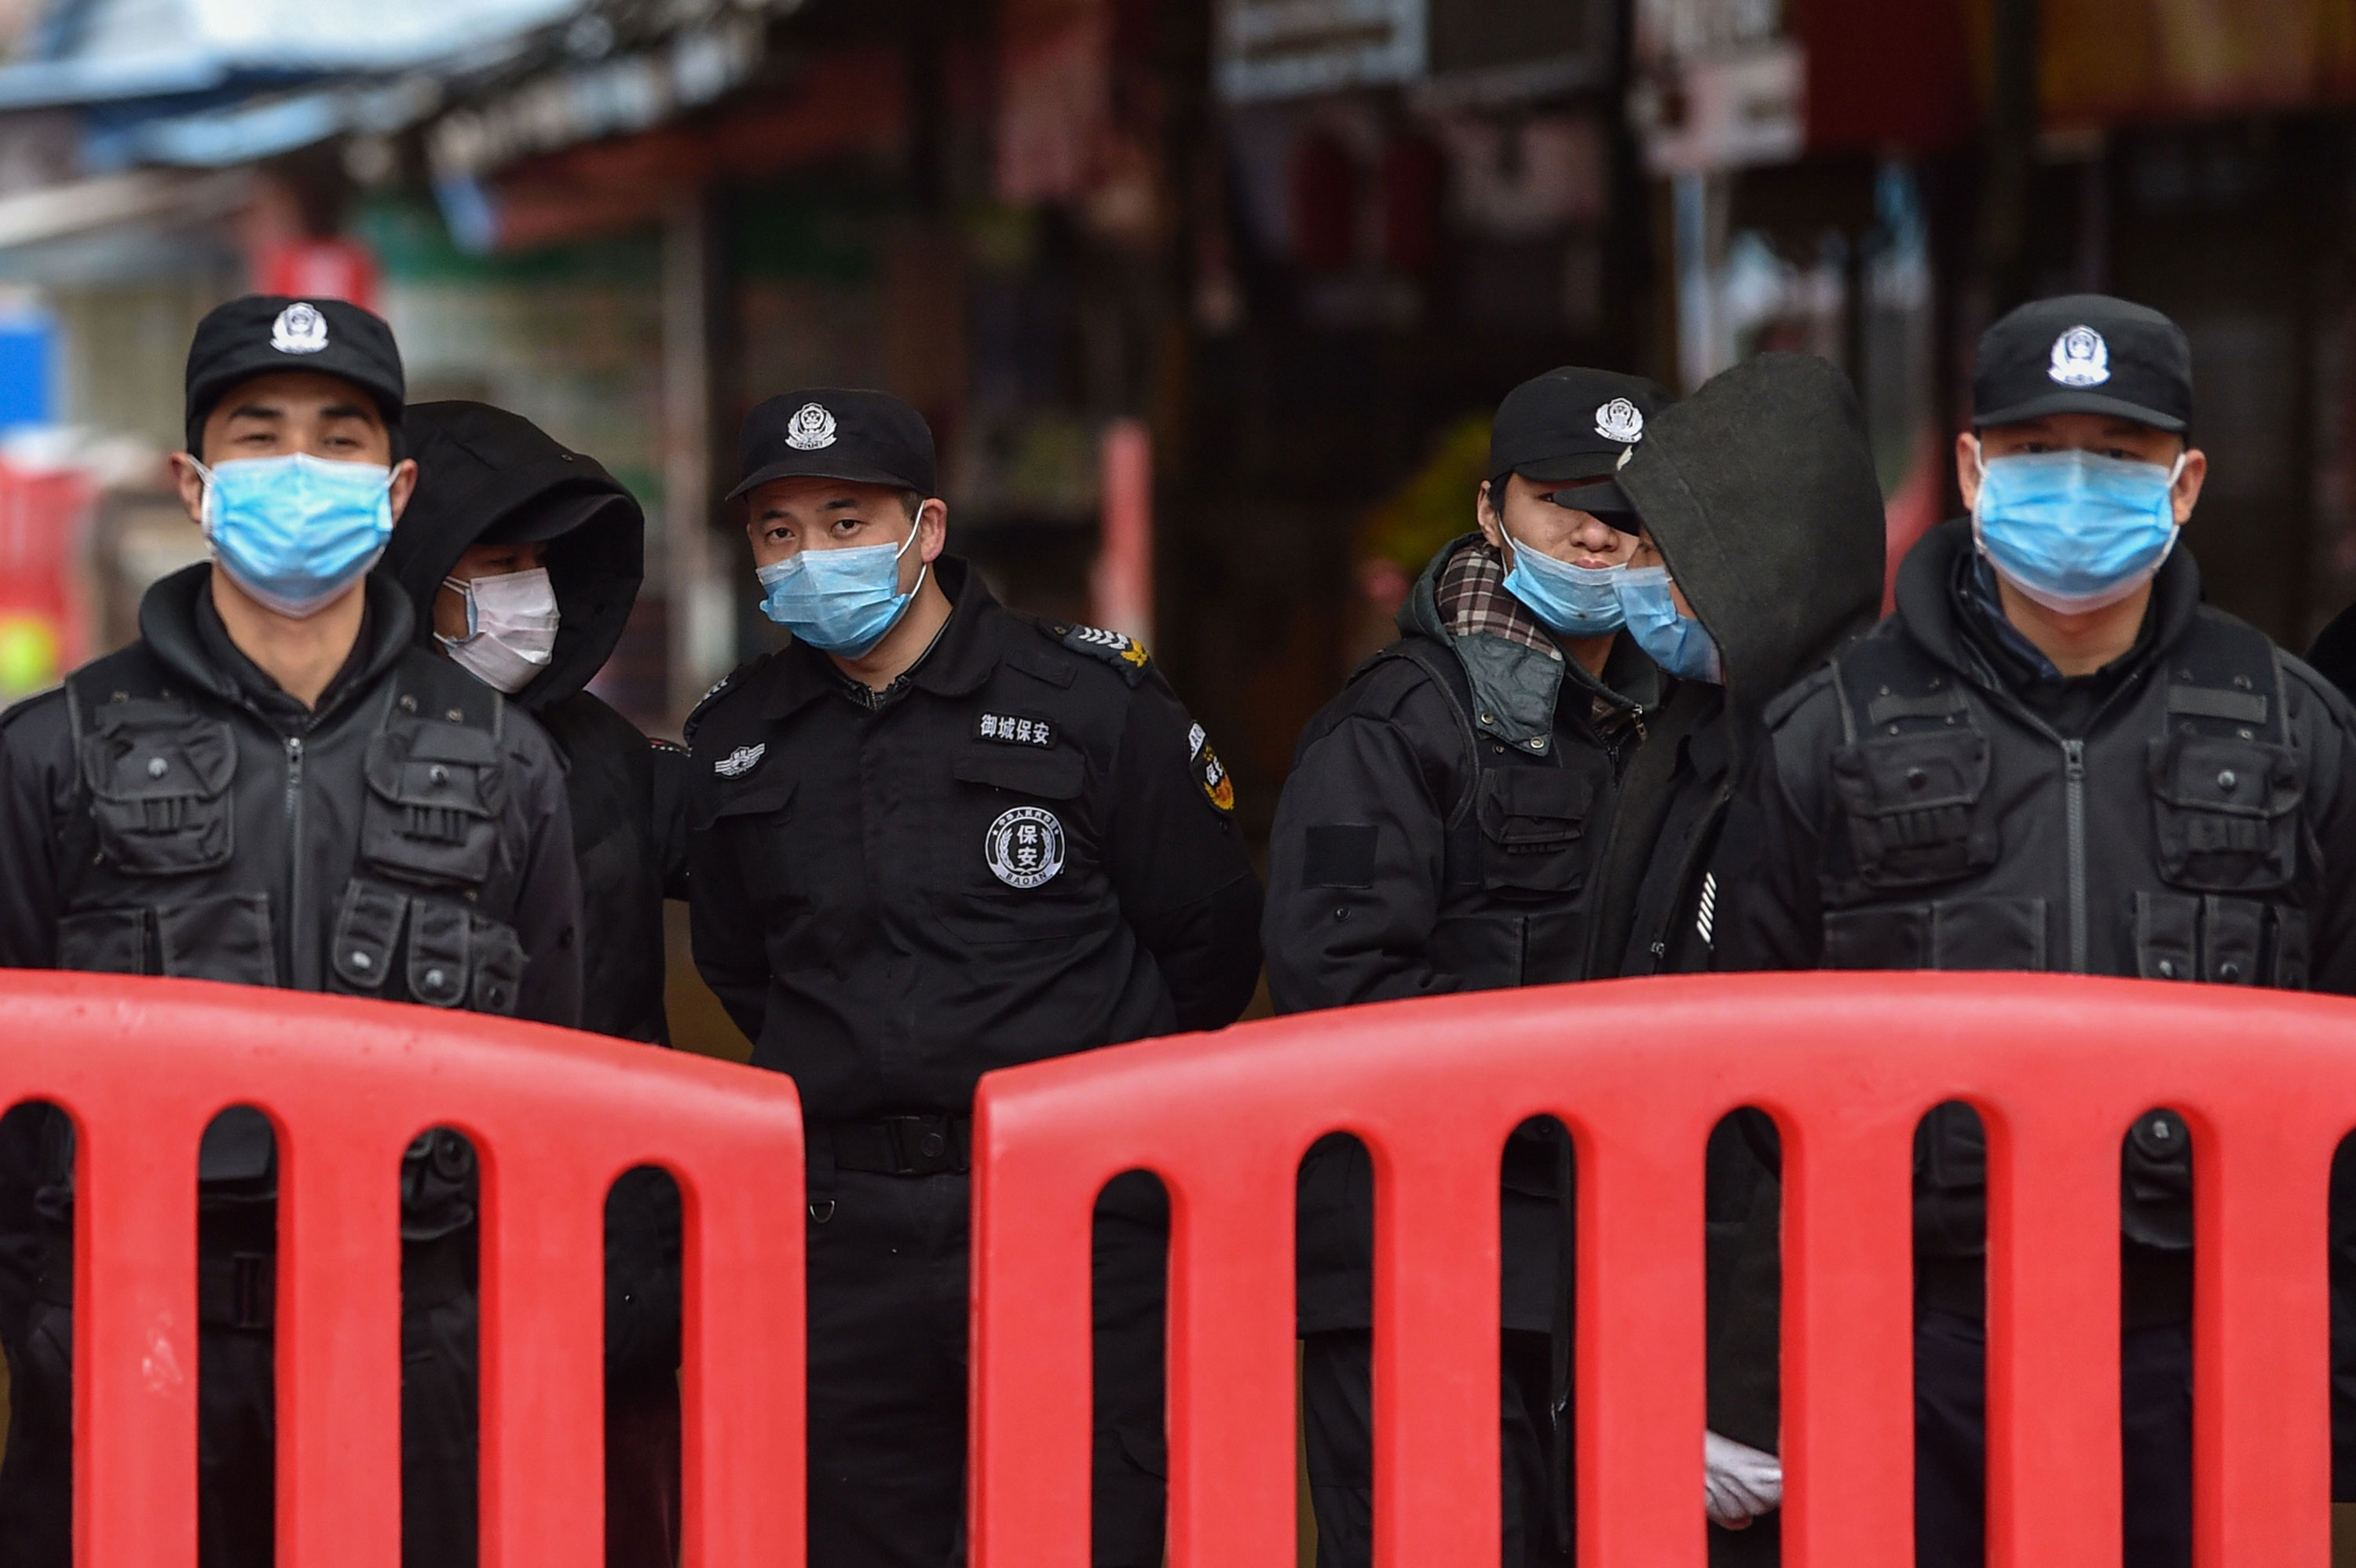 Authorities stand outside the Huanan Seafood Wholesale Market where the coronavirus was detected in Wuhan on January 24.